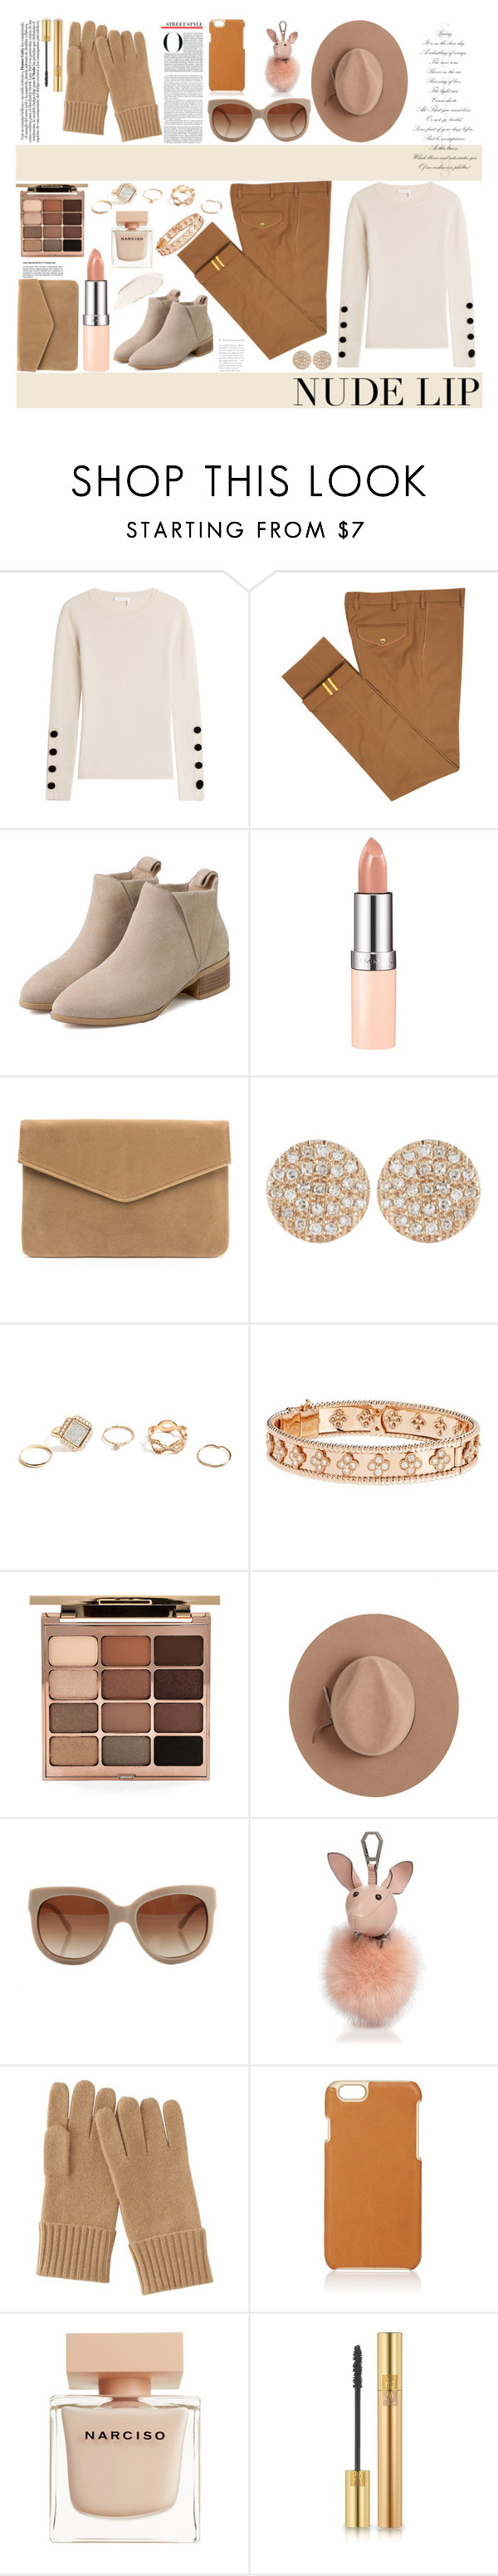 """Senza titolo #5678"" by waikiki24 ❤ liked on Polyvore featuring beauty, See by Chloé, Diverso, Rimmel, Dana Rebecca Designs, GUESS, Van Cleef & Arpels, Stila, Calypso Private Label and STELLA McCARTNEY"